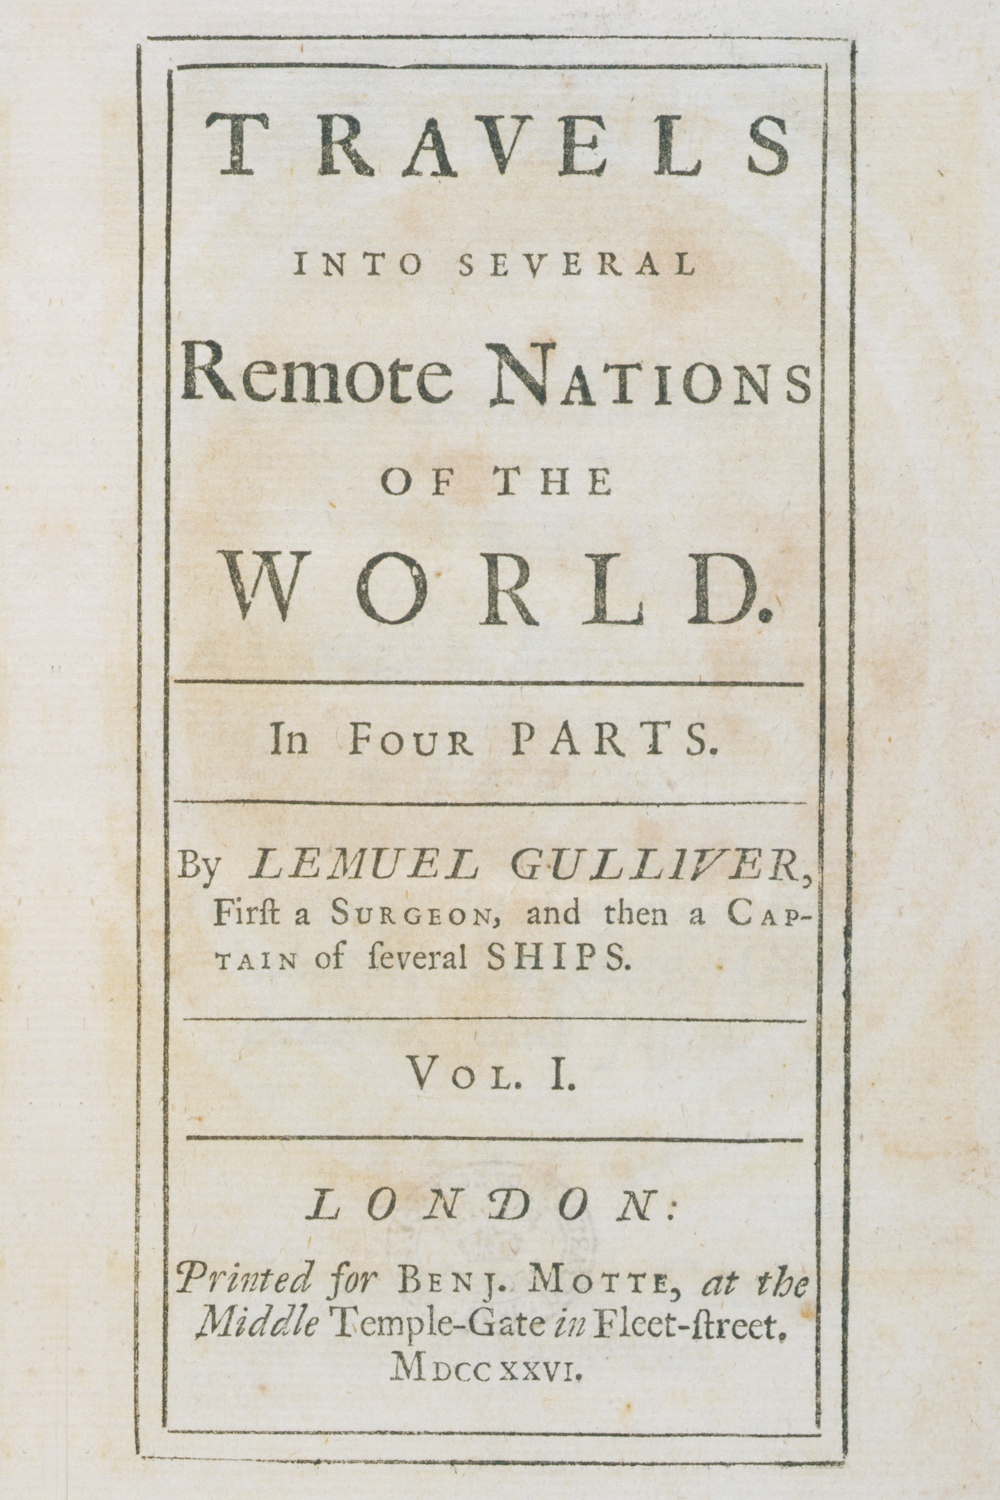 a review of gullivers travels by jonathan swift The gulliver's travels by jonathan swift the novel begins with gulliver telling the story of his life essay about gulliver: jonathan swift and old style english a review of a modest proposal by jonathan swift essay.